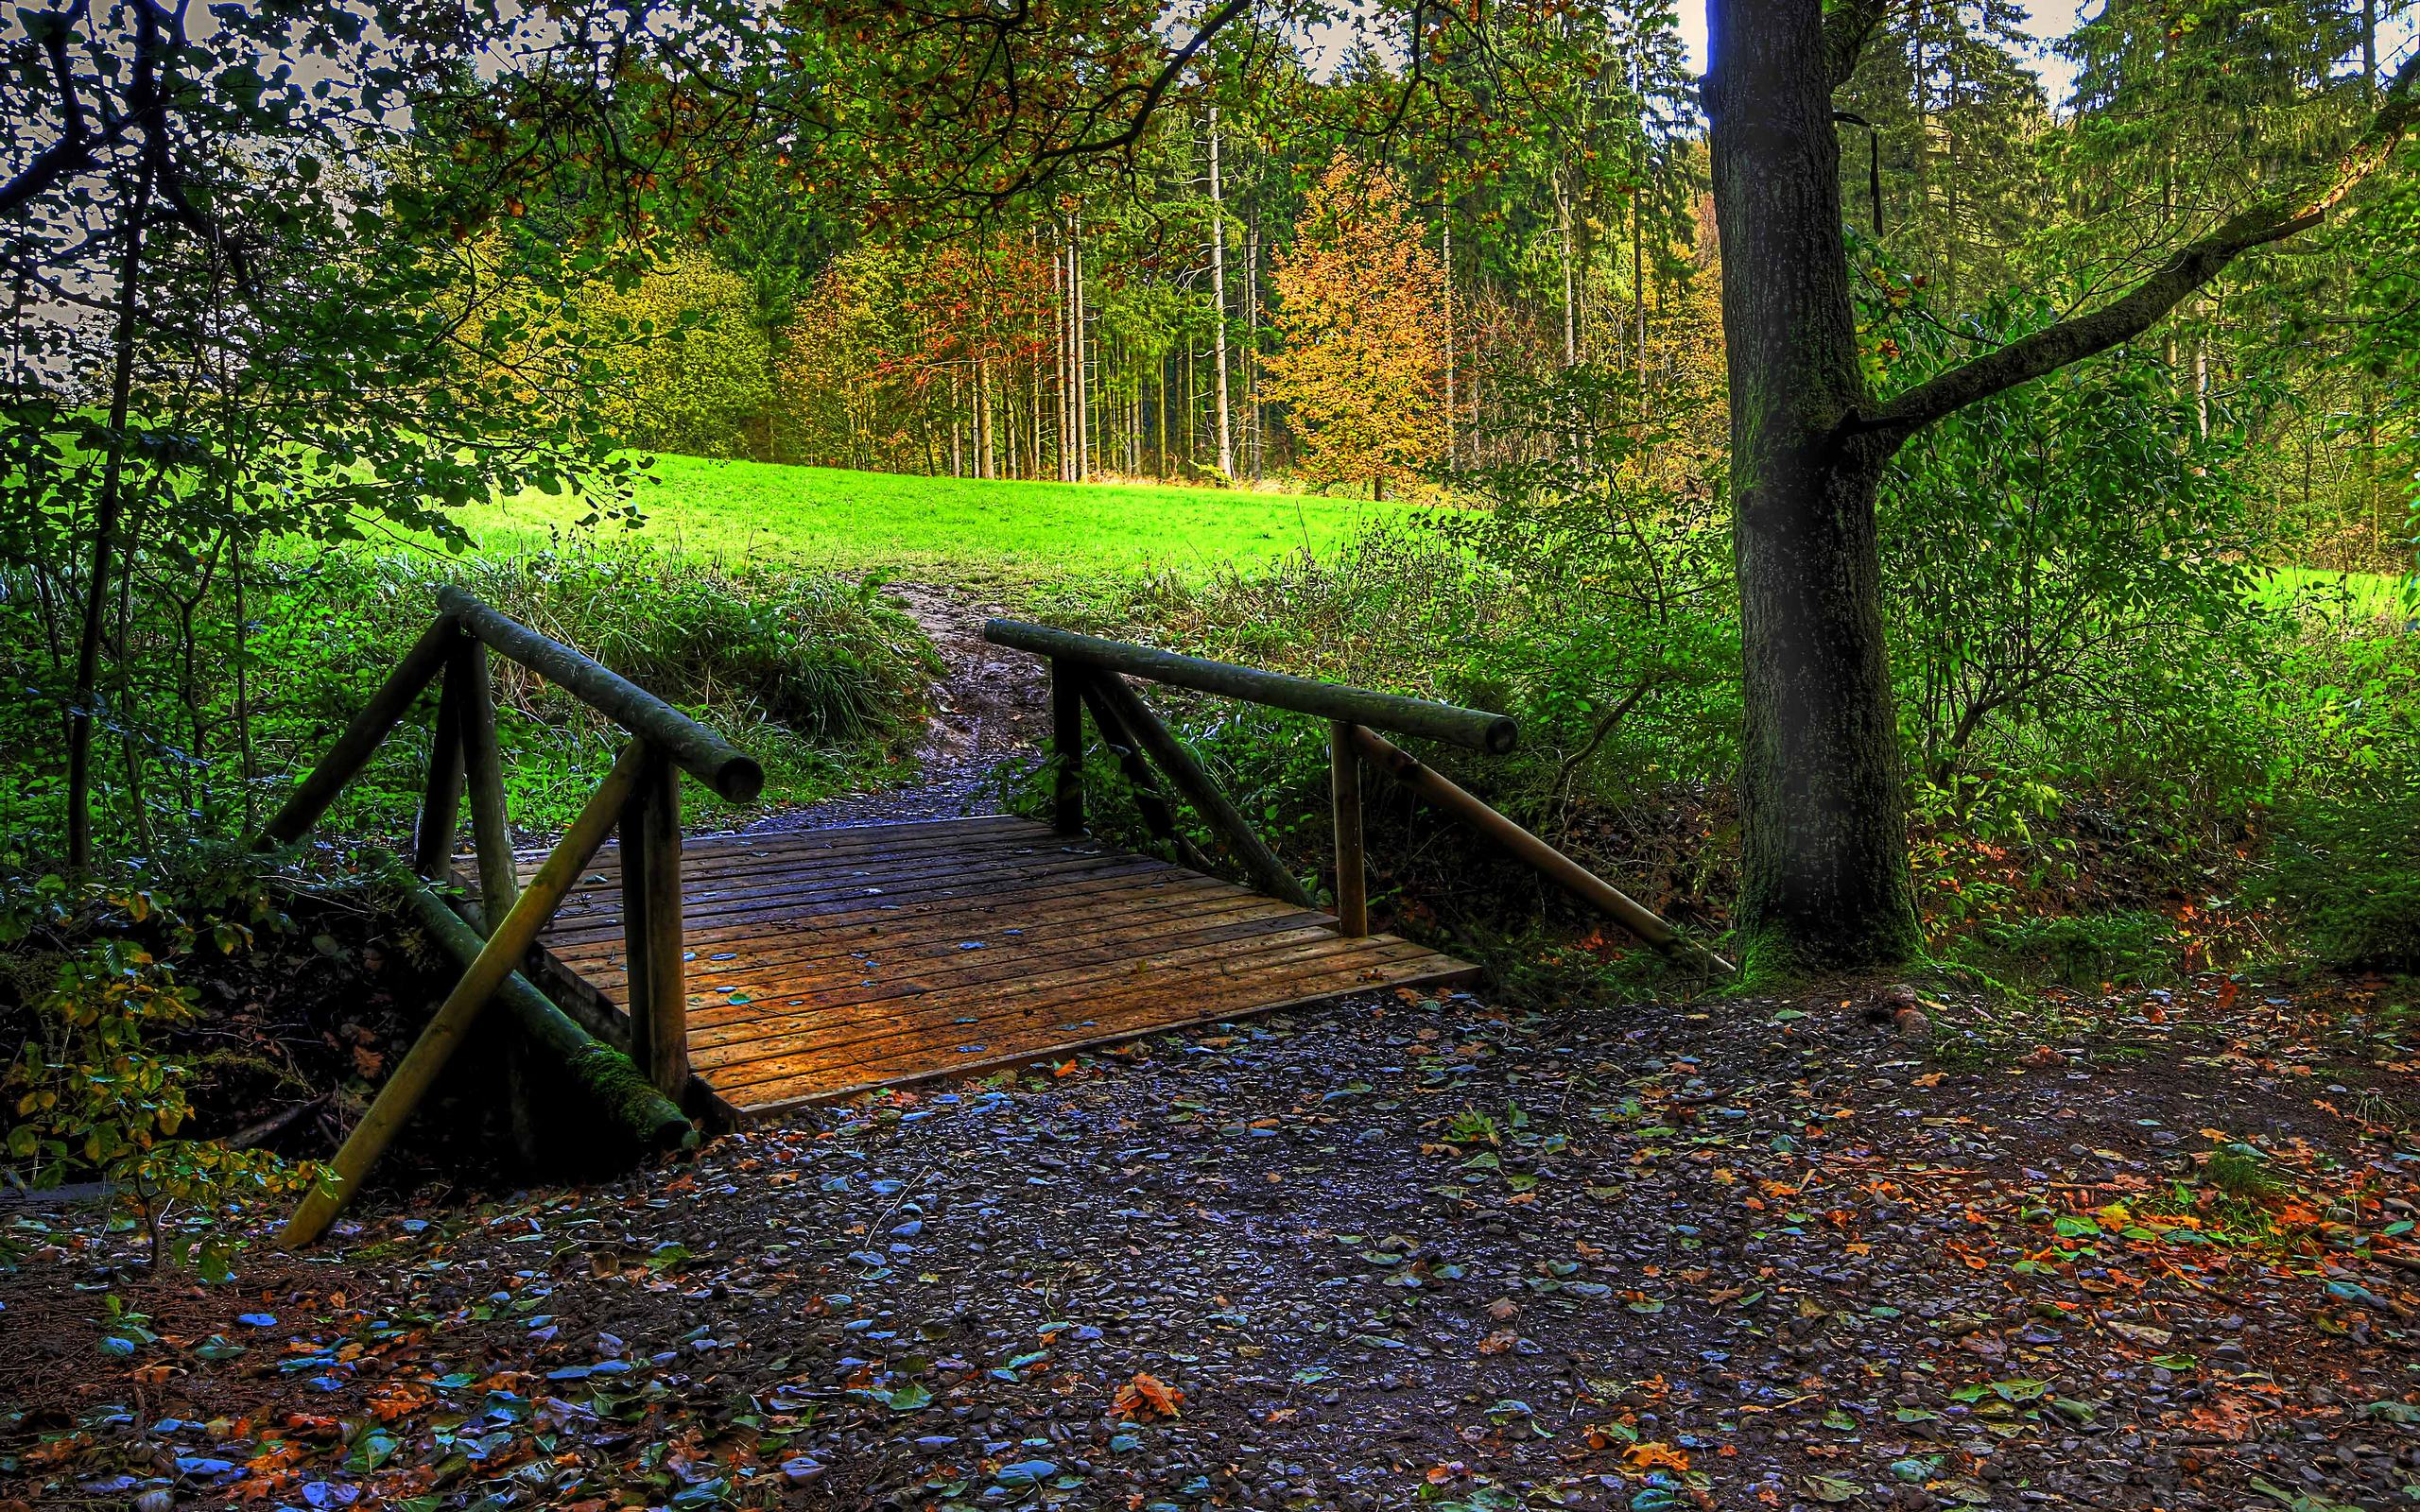 HD Wallpapers Autumn Free Wallpaper - Bridge To The Forest